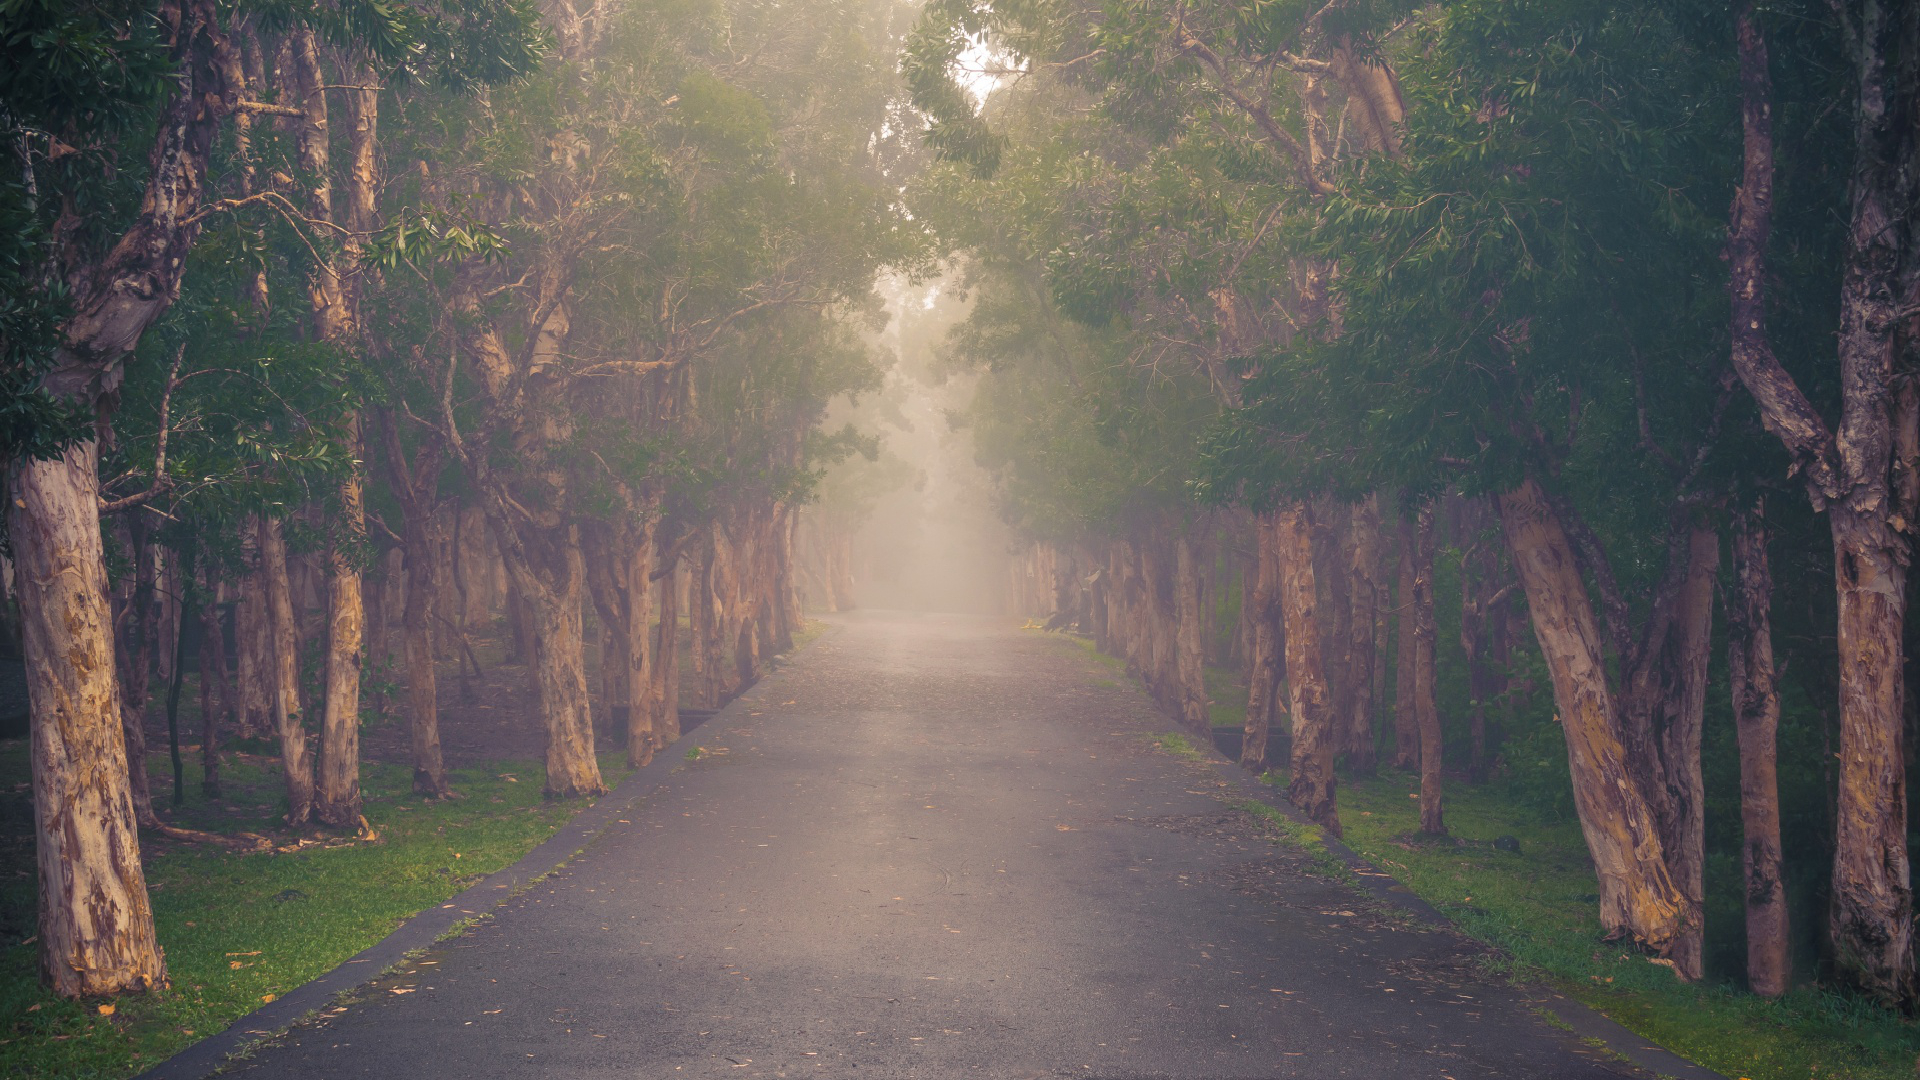 woods,nationalpark,world,mist,natural phenomenon,cloud,timber,highhumidity,chemingrenier,fog,tropical,wood,alexandrafalls,forest,dapple,blackrivergorgesnationalpark,evergreen,nature,trees,cloudforest,foggy,universe,route,mauritius,forest,,green,jungle,rainforest,road